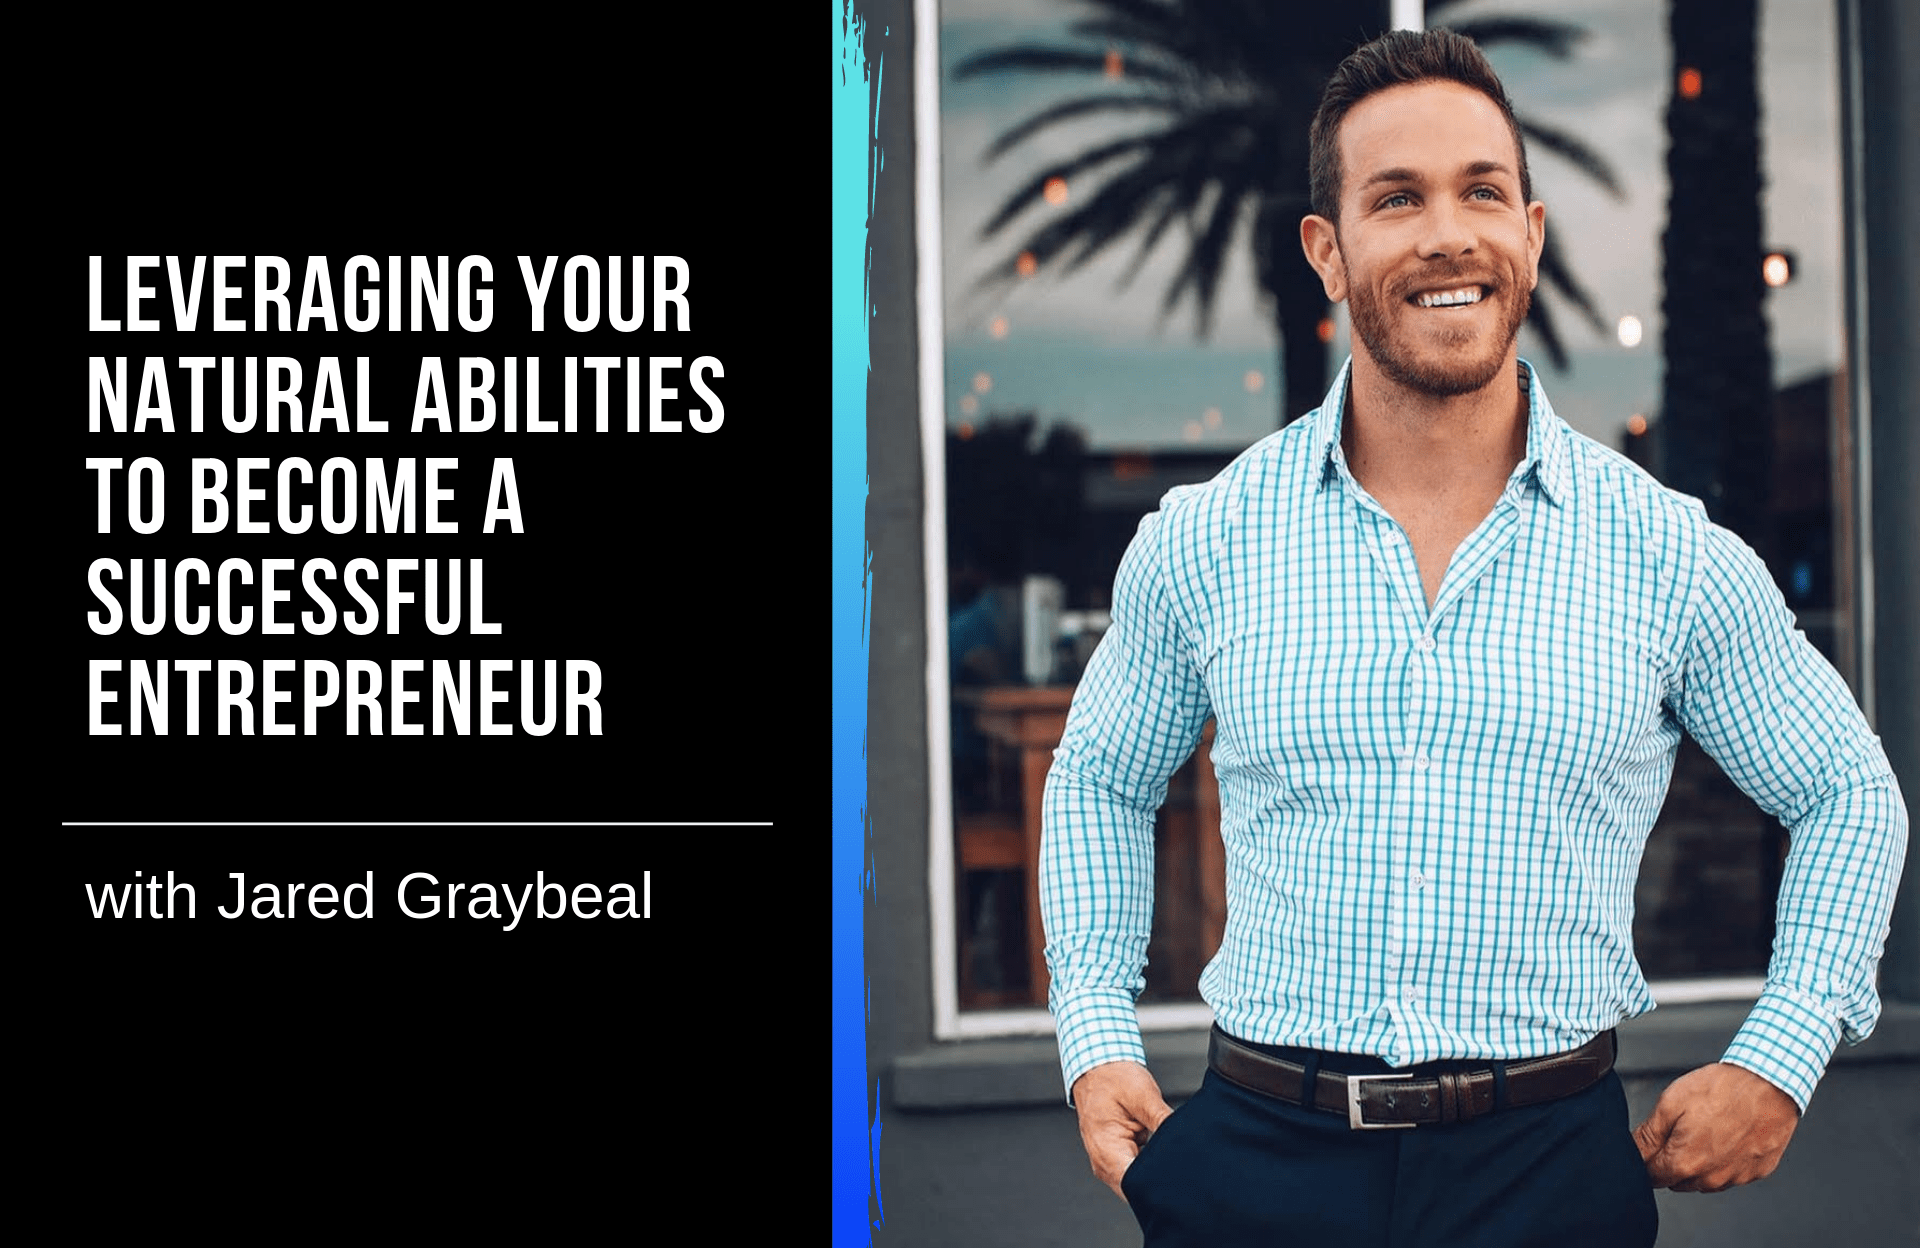 Leveraging Your Natural Abilities to Become a Successful Entrepreneur with Jared Graybeal